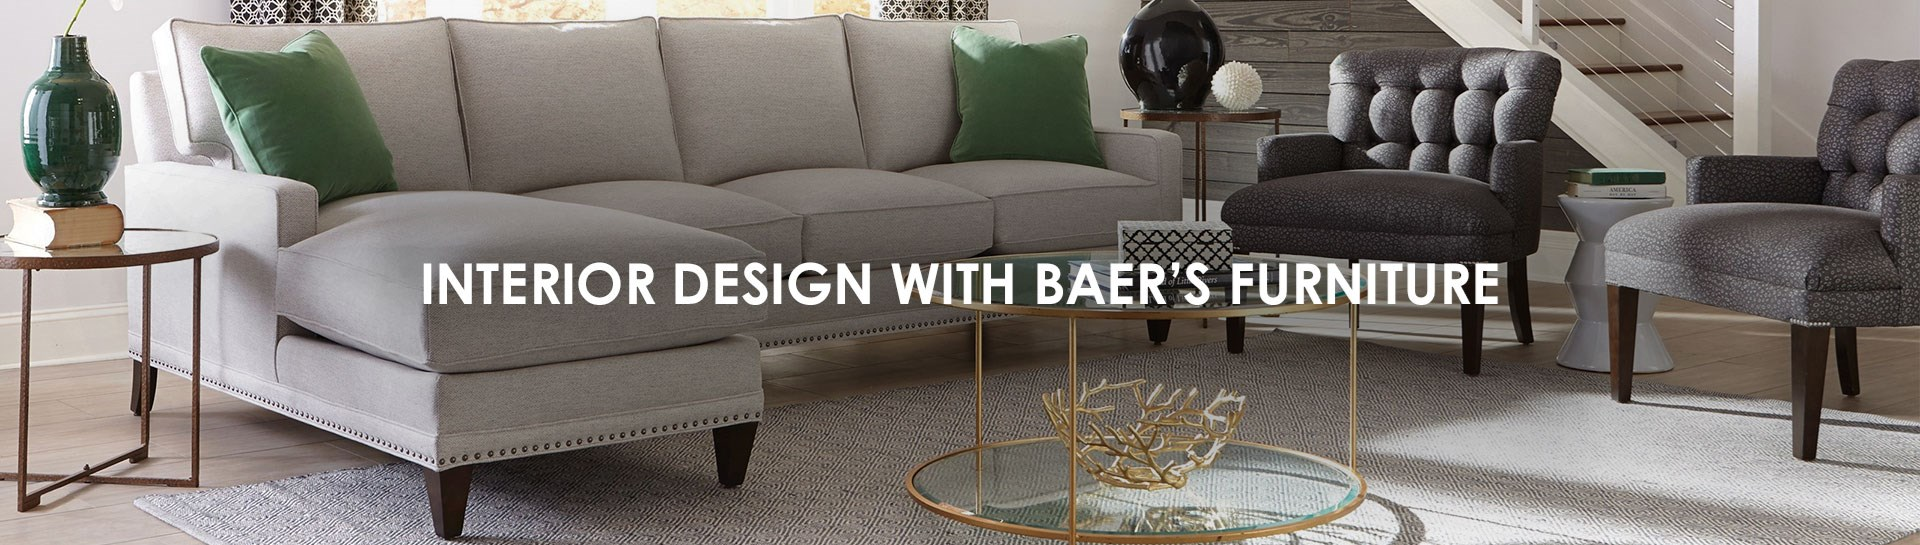 Interior Design with Baer's Furniture